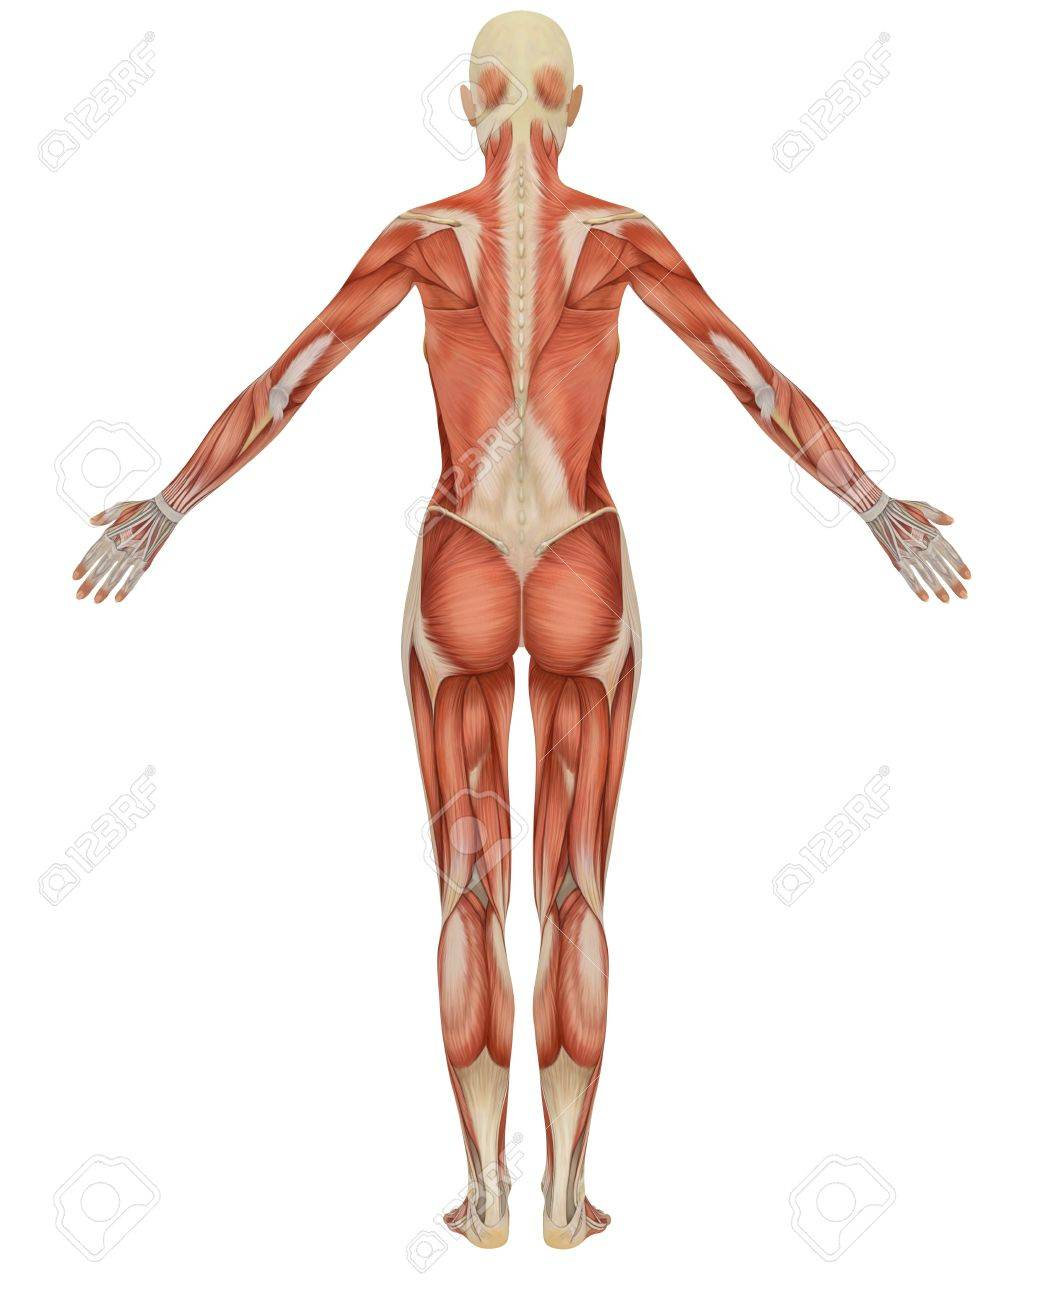 Rear view of the female muscular anatomy. Very educational. - 6910681